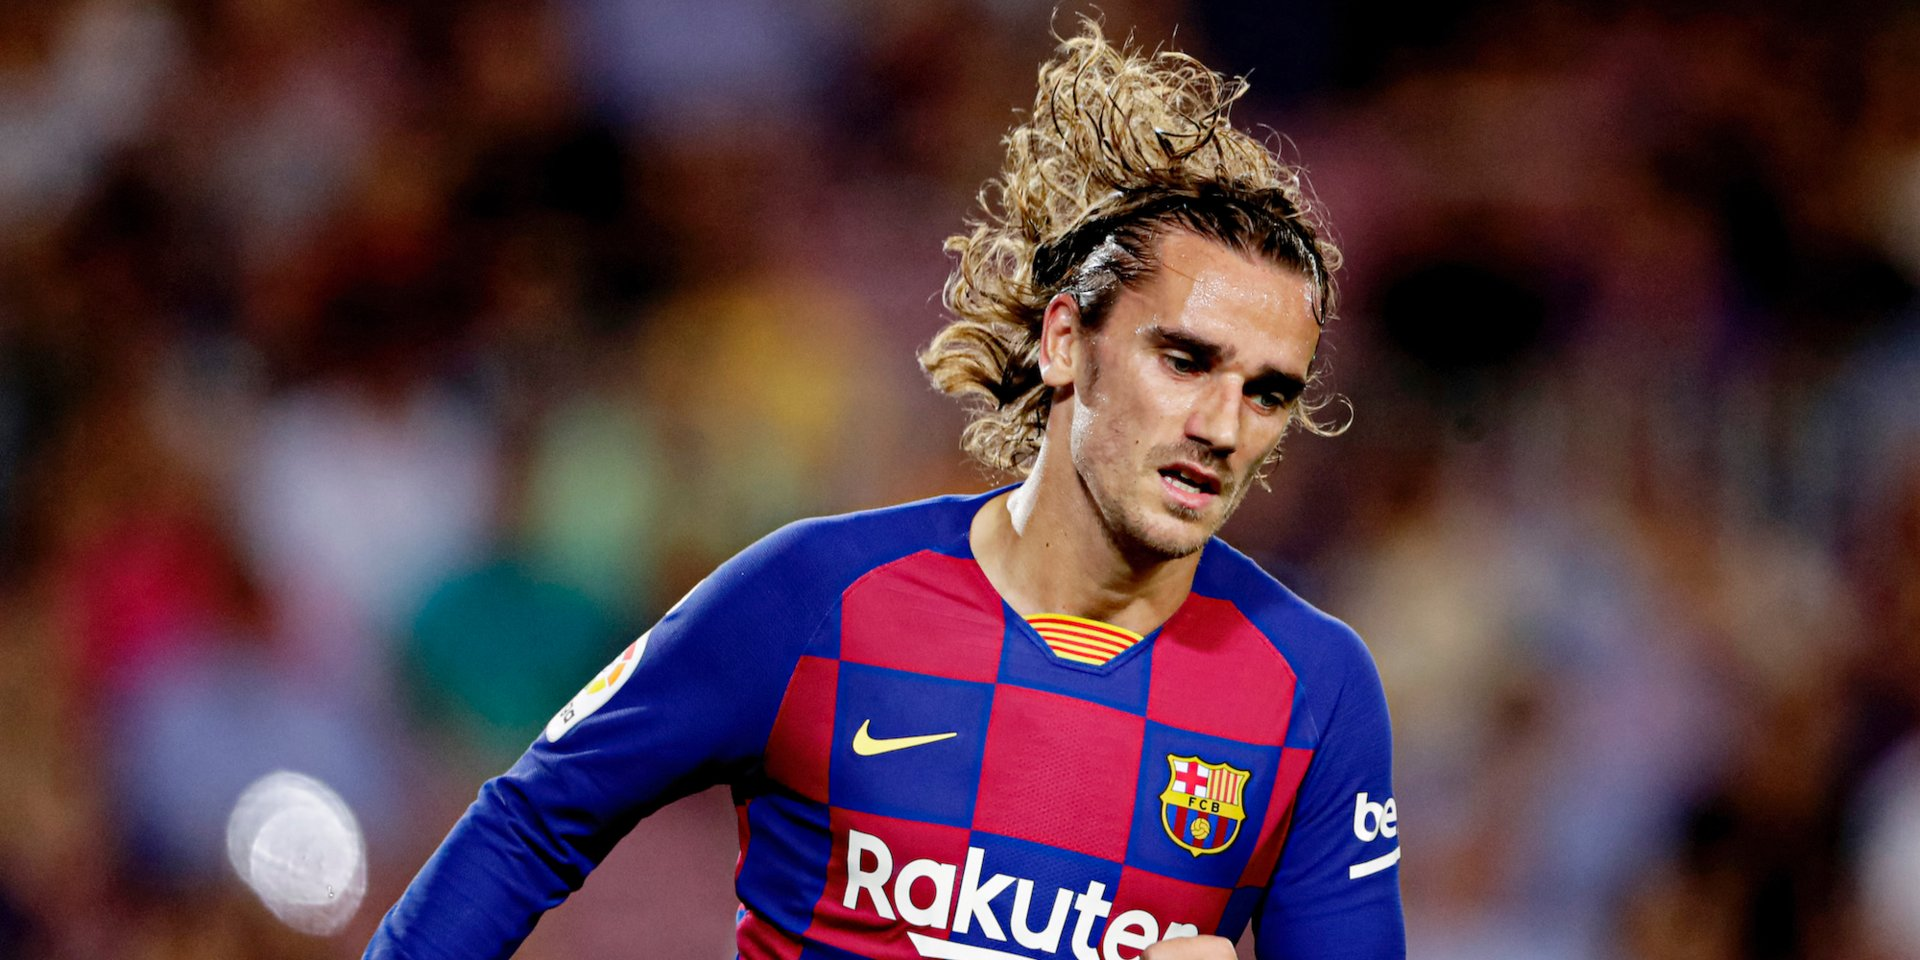 FC Barcelona has been fined just $328 for breaking the rules during its $131 million transfer of Antoine Griezmann